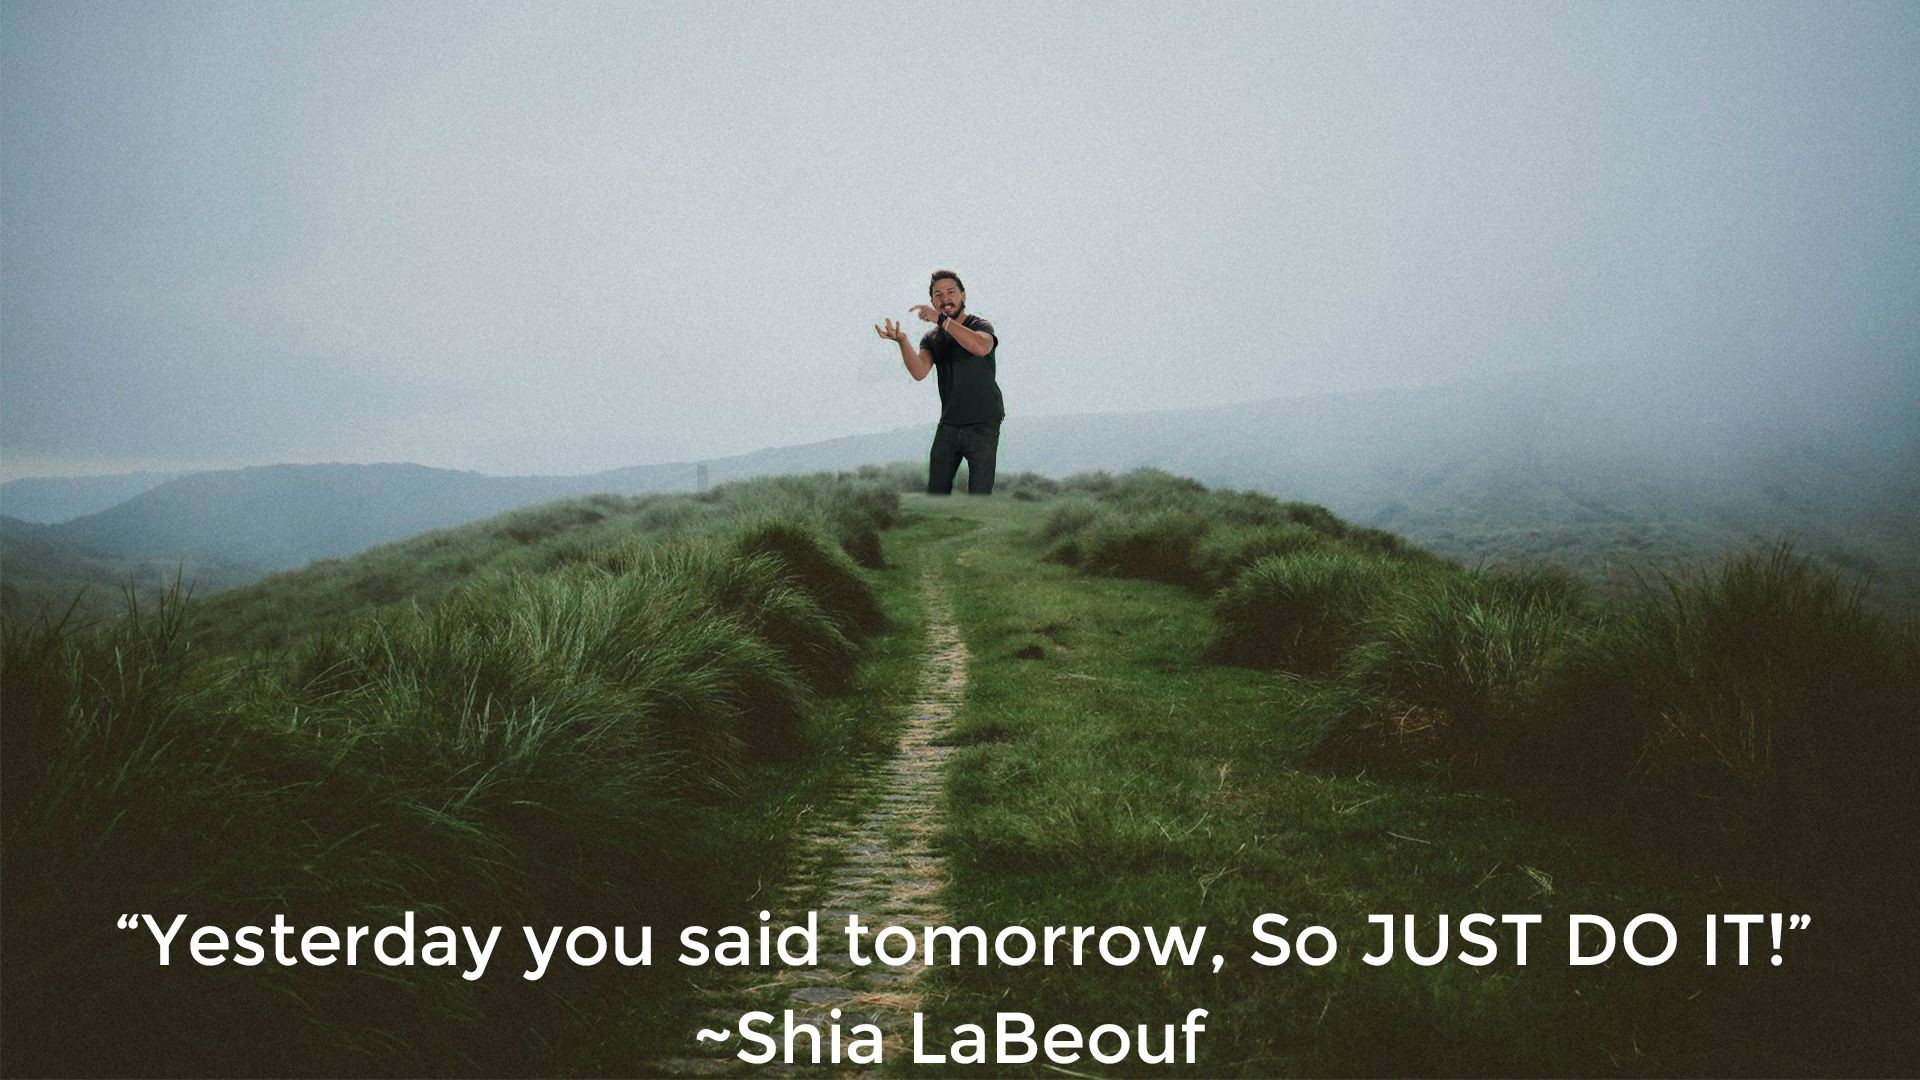 Motivational Quotes Wallpaper Download Shia Labeouf Just Do It Wallpaper 69 Images